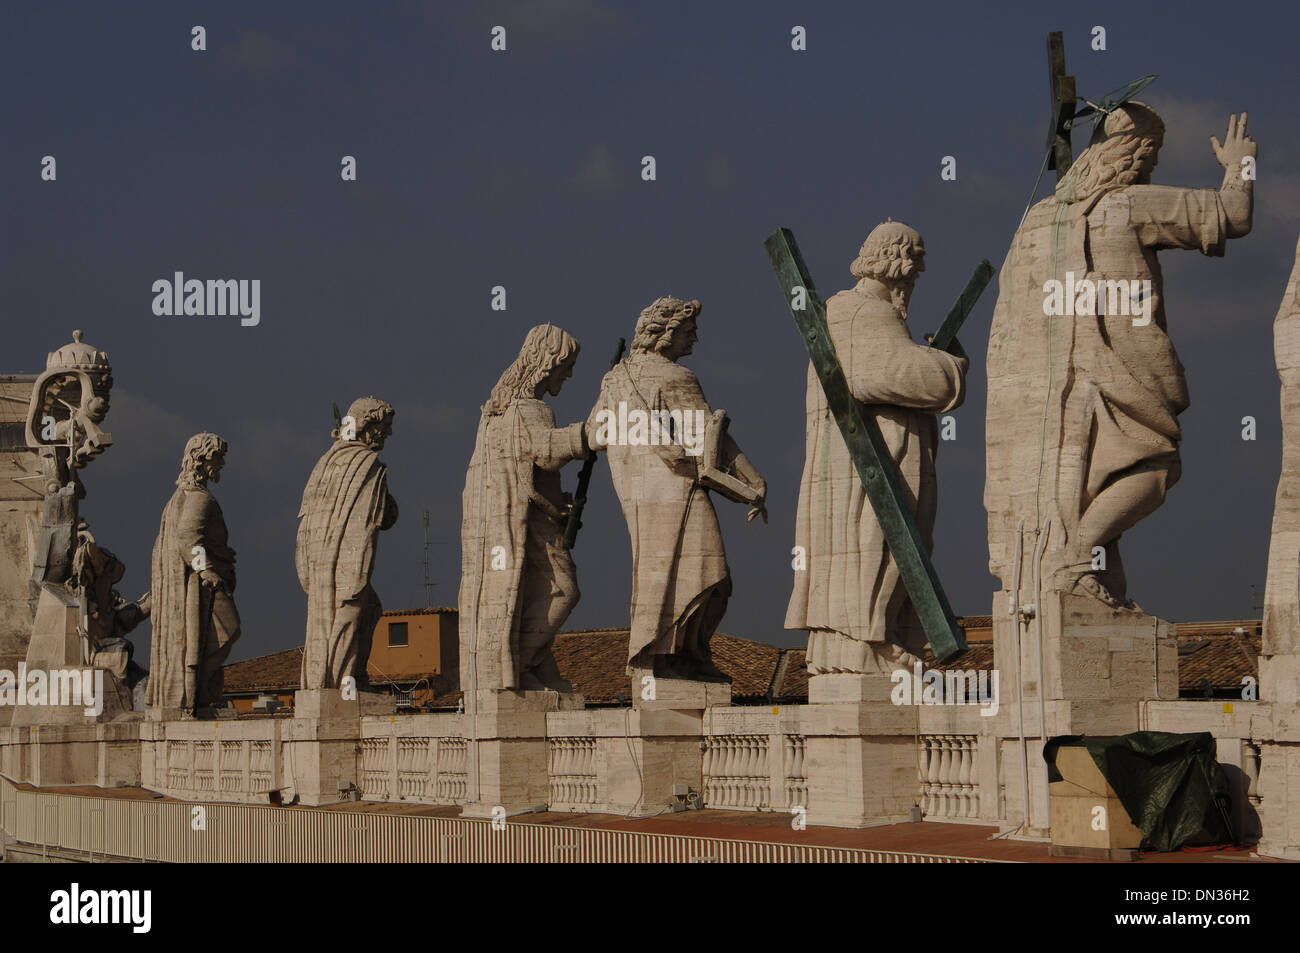 Jesus and the Apostles on the roof of St. Peter's Basilica. Vatican City. - Stock Image